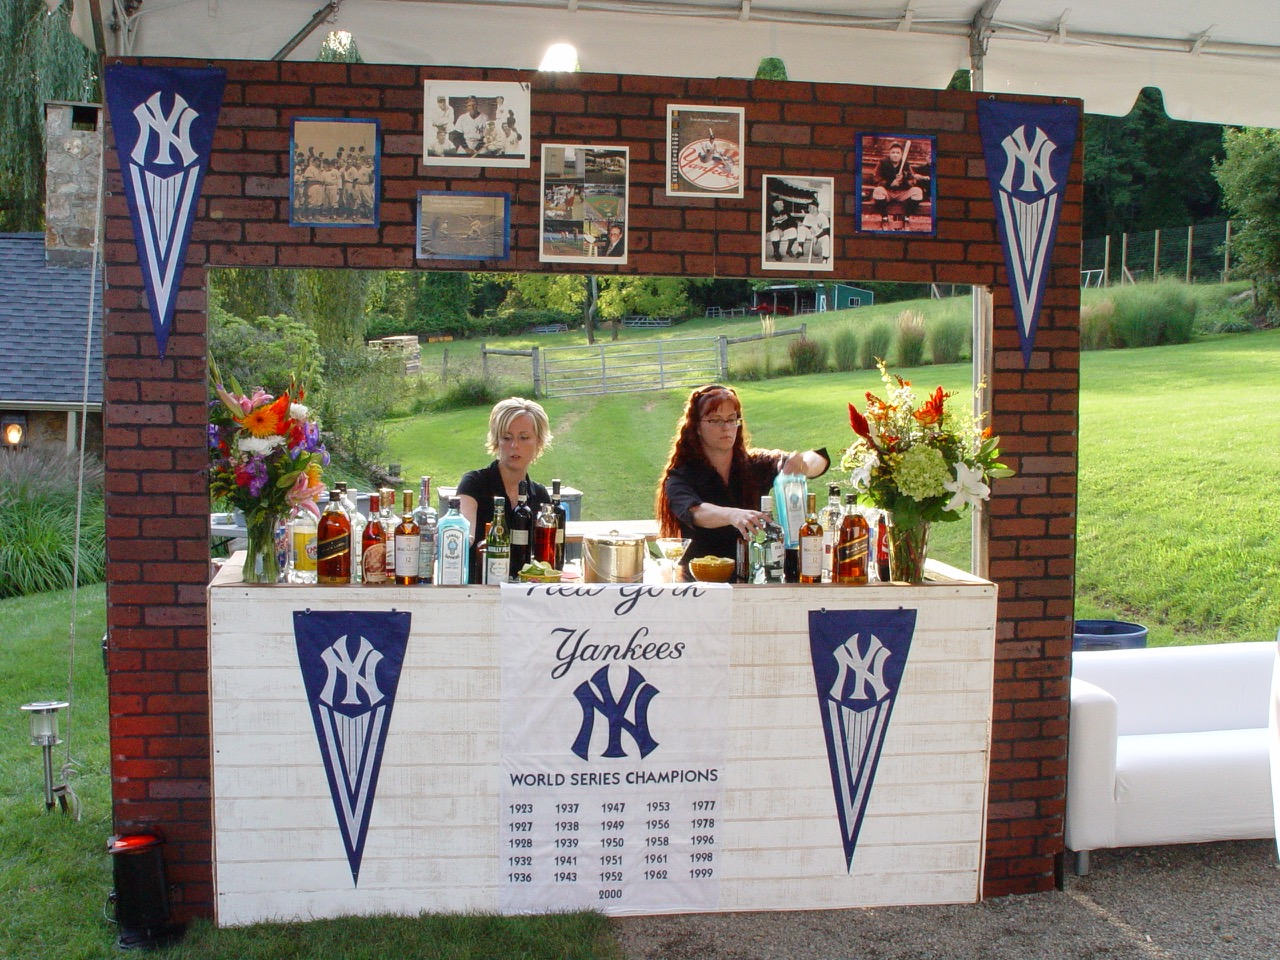 Sports+Theme+Centerpieces+Decor+and+Lighting+by+Eggsotic+Events+NJ+Event+Design+and+Decor+Rental++-+1.jpg